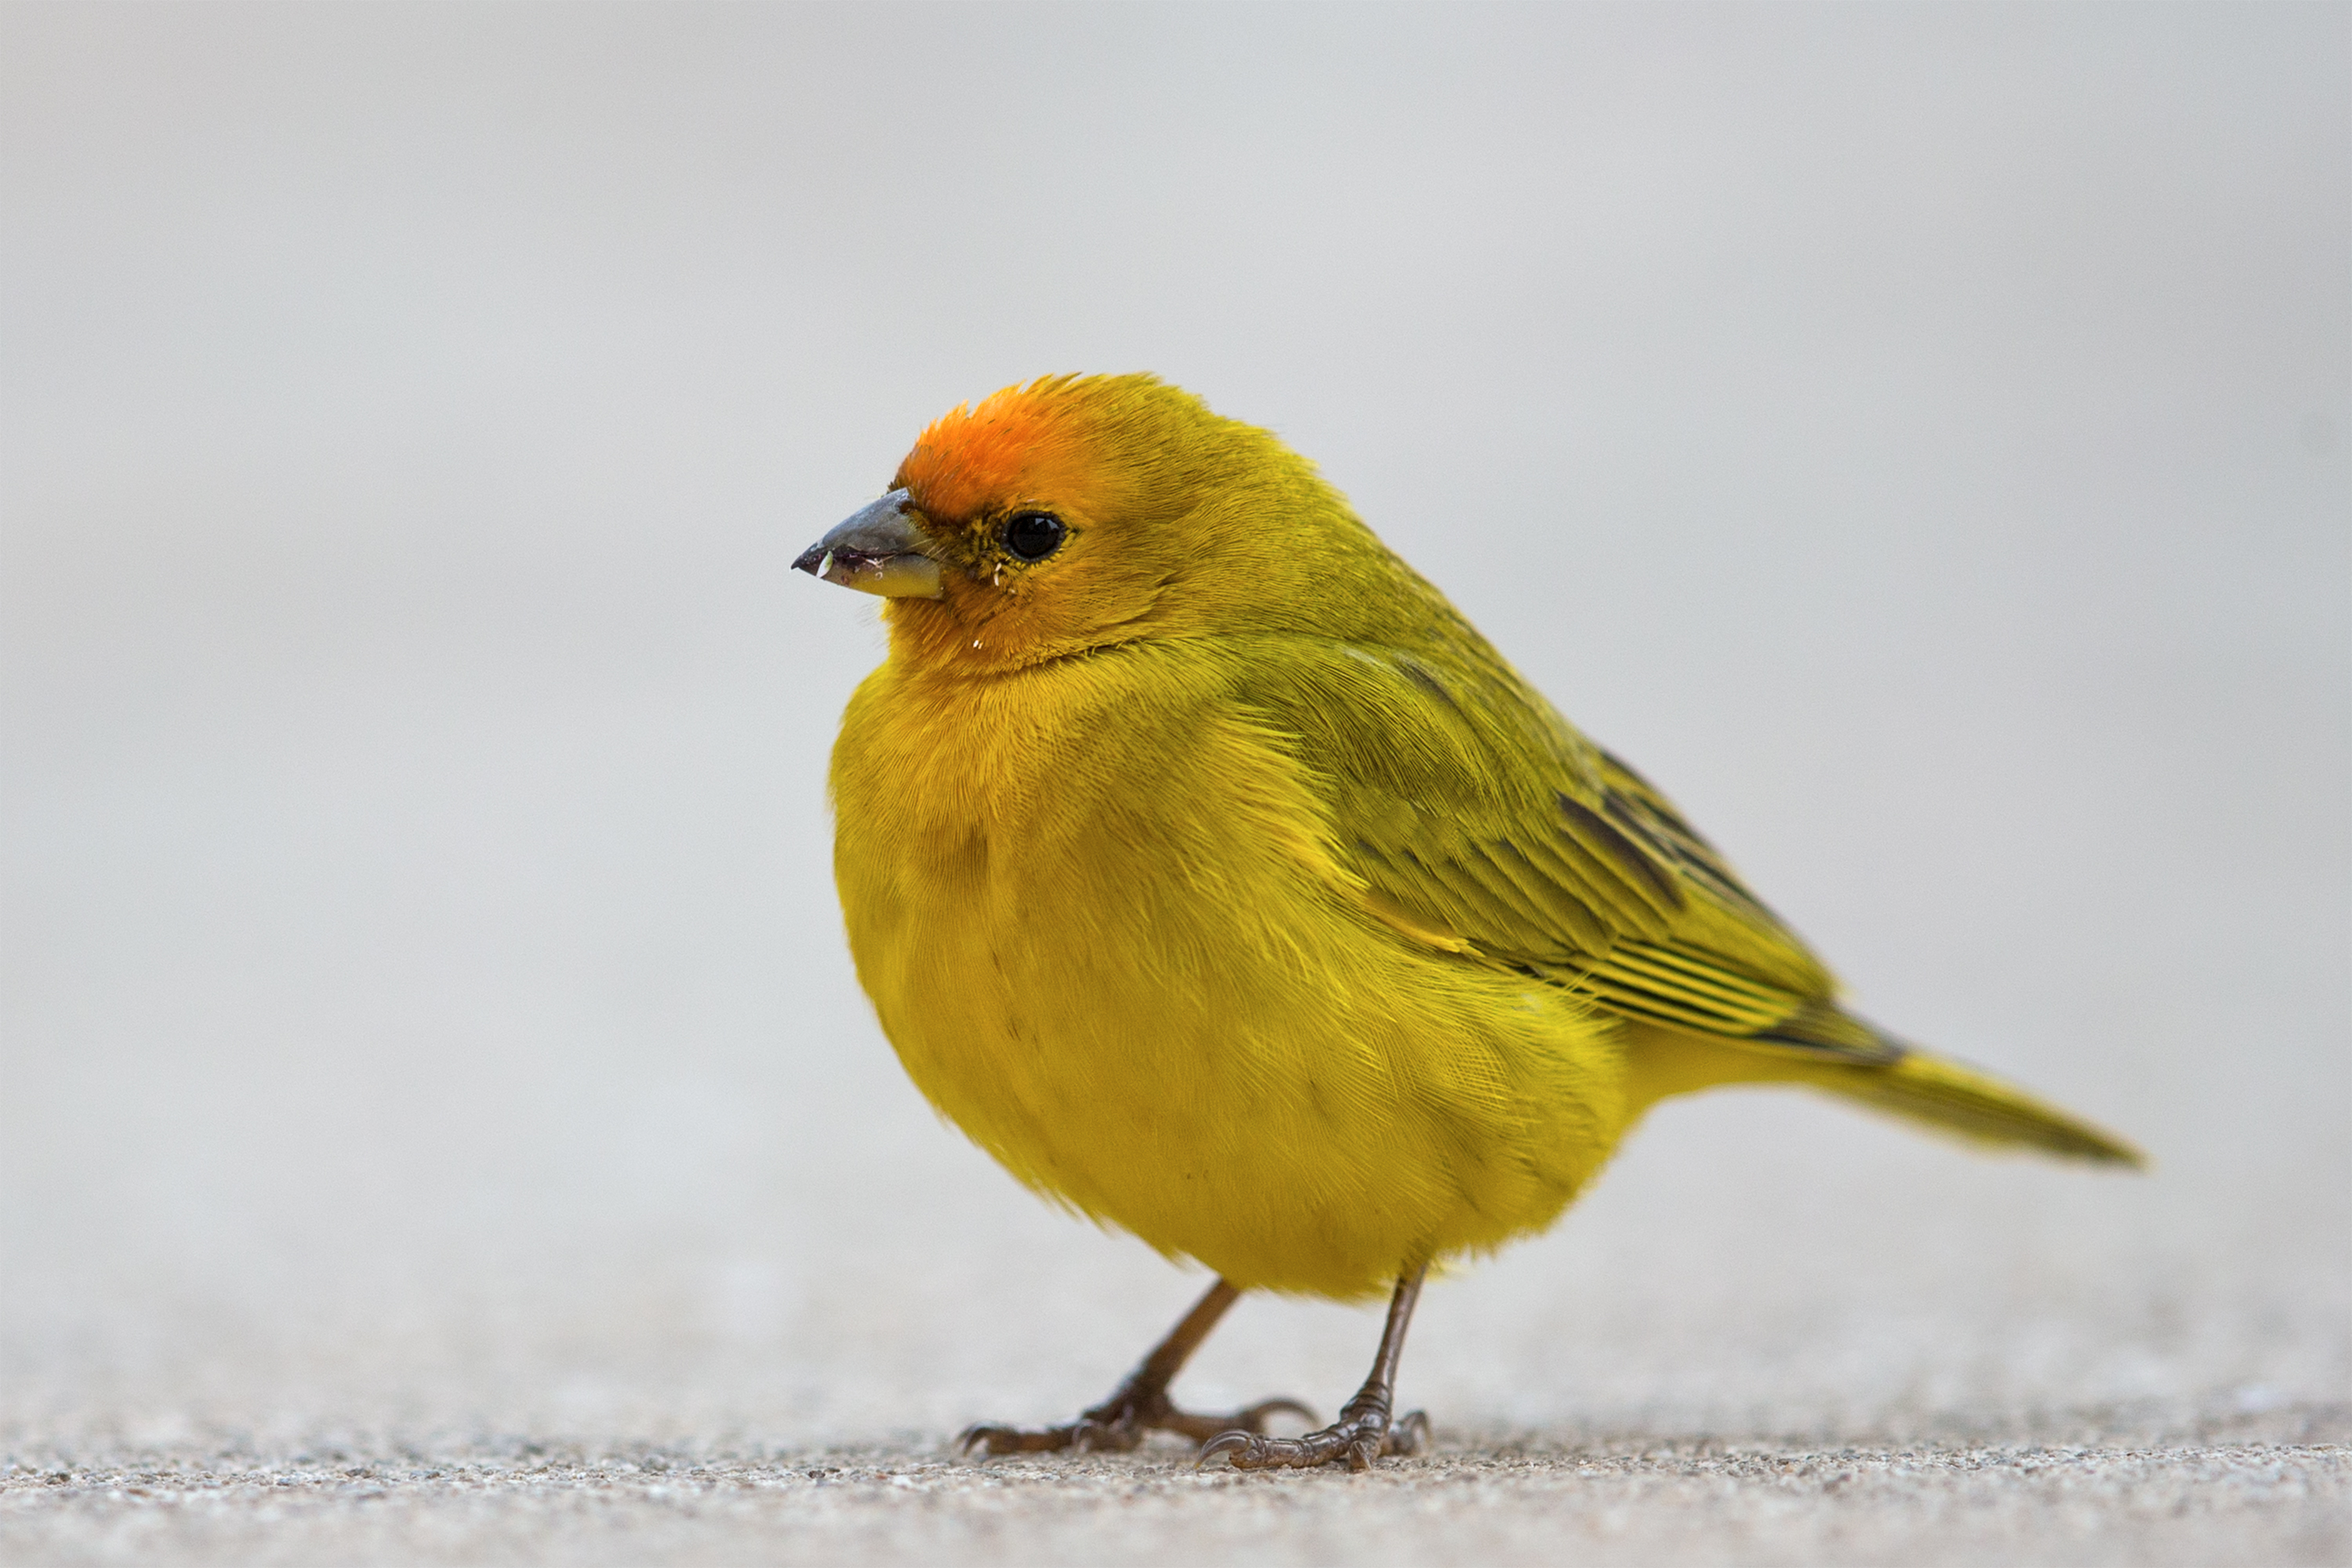 finch Finch is the common name for small to medium-sized, seed-eating birds comprising the passerine family fringillidae, characterized by a short neck, compact body, and short, stout, conical bills adapted.